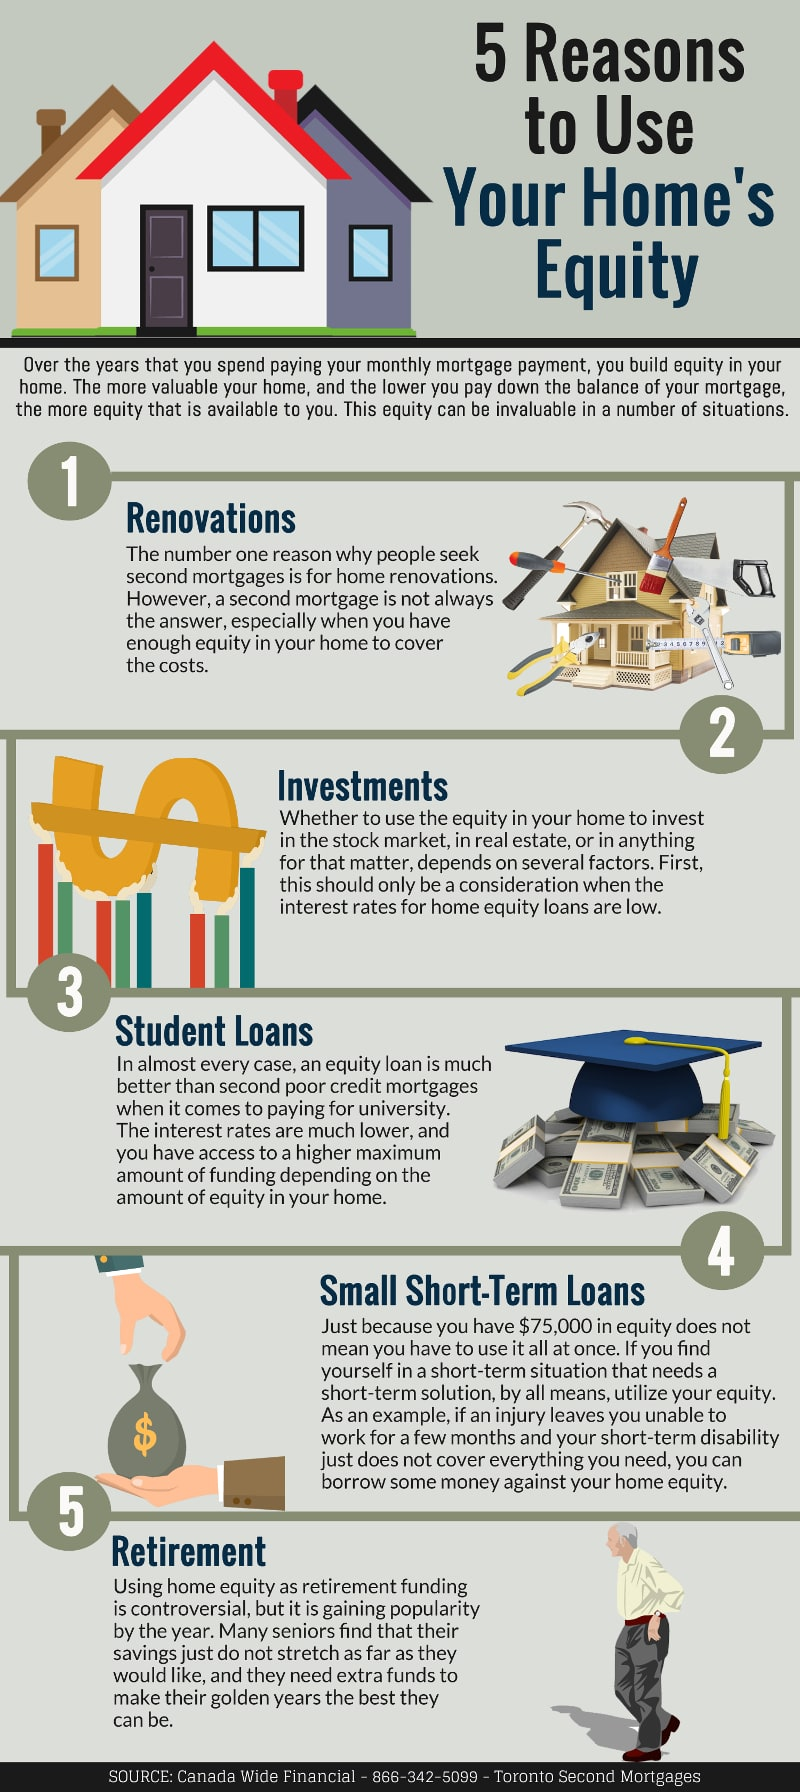 5 Reasons to Use Your Home's Equity